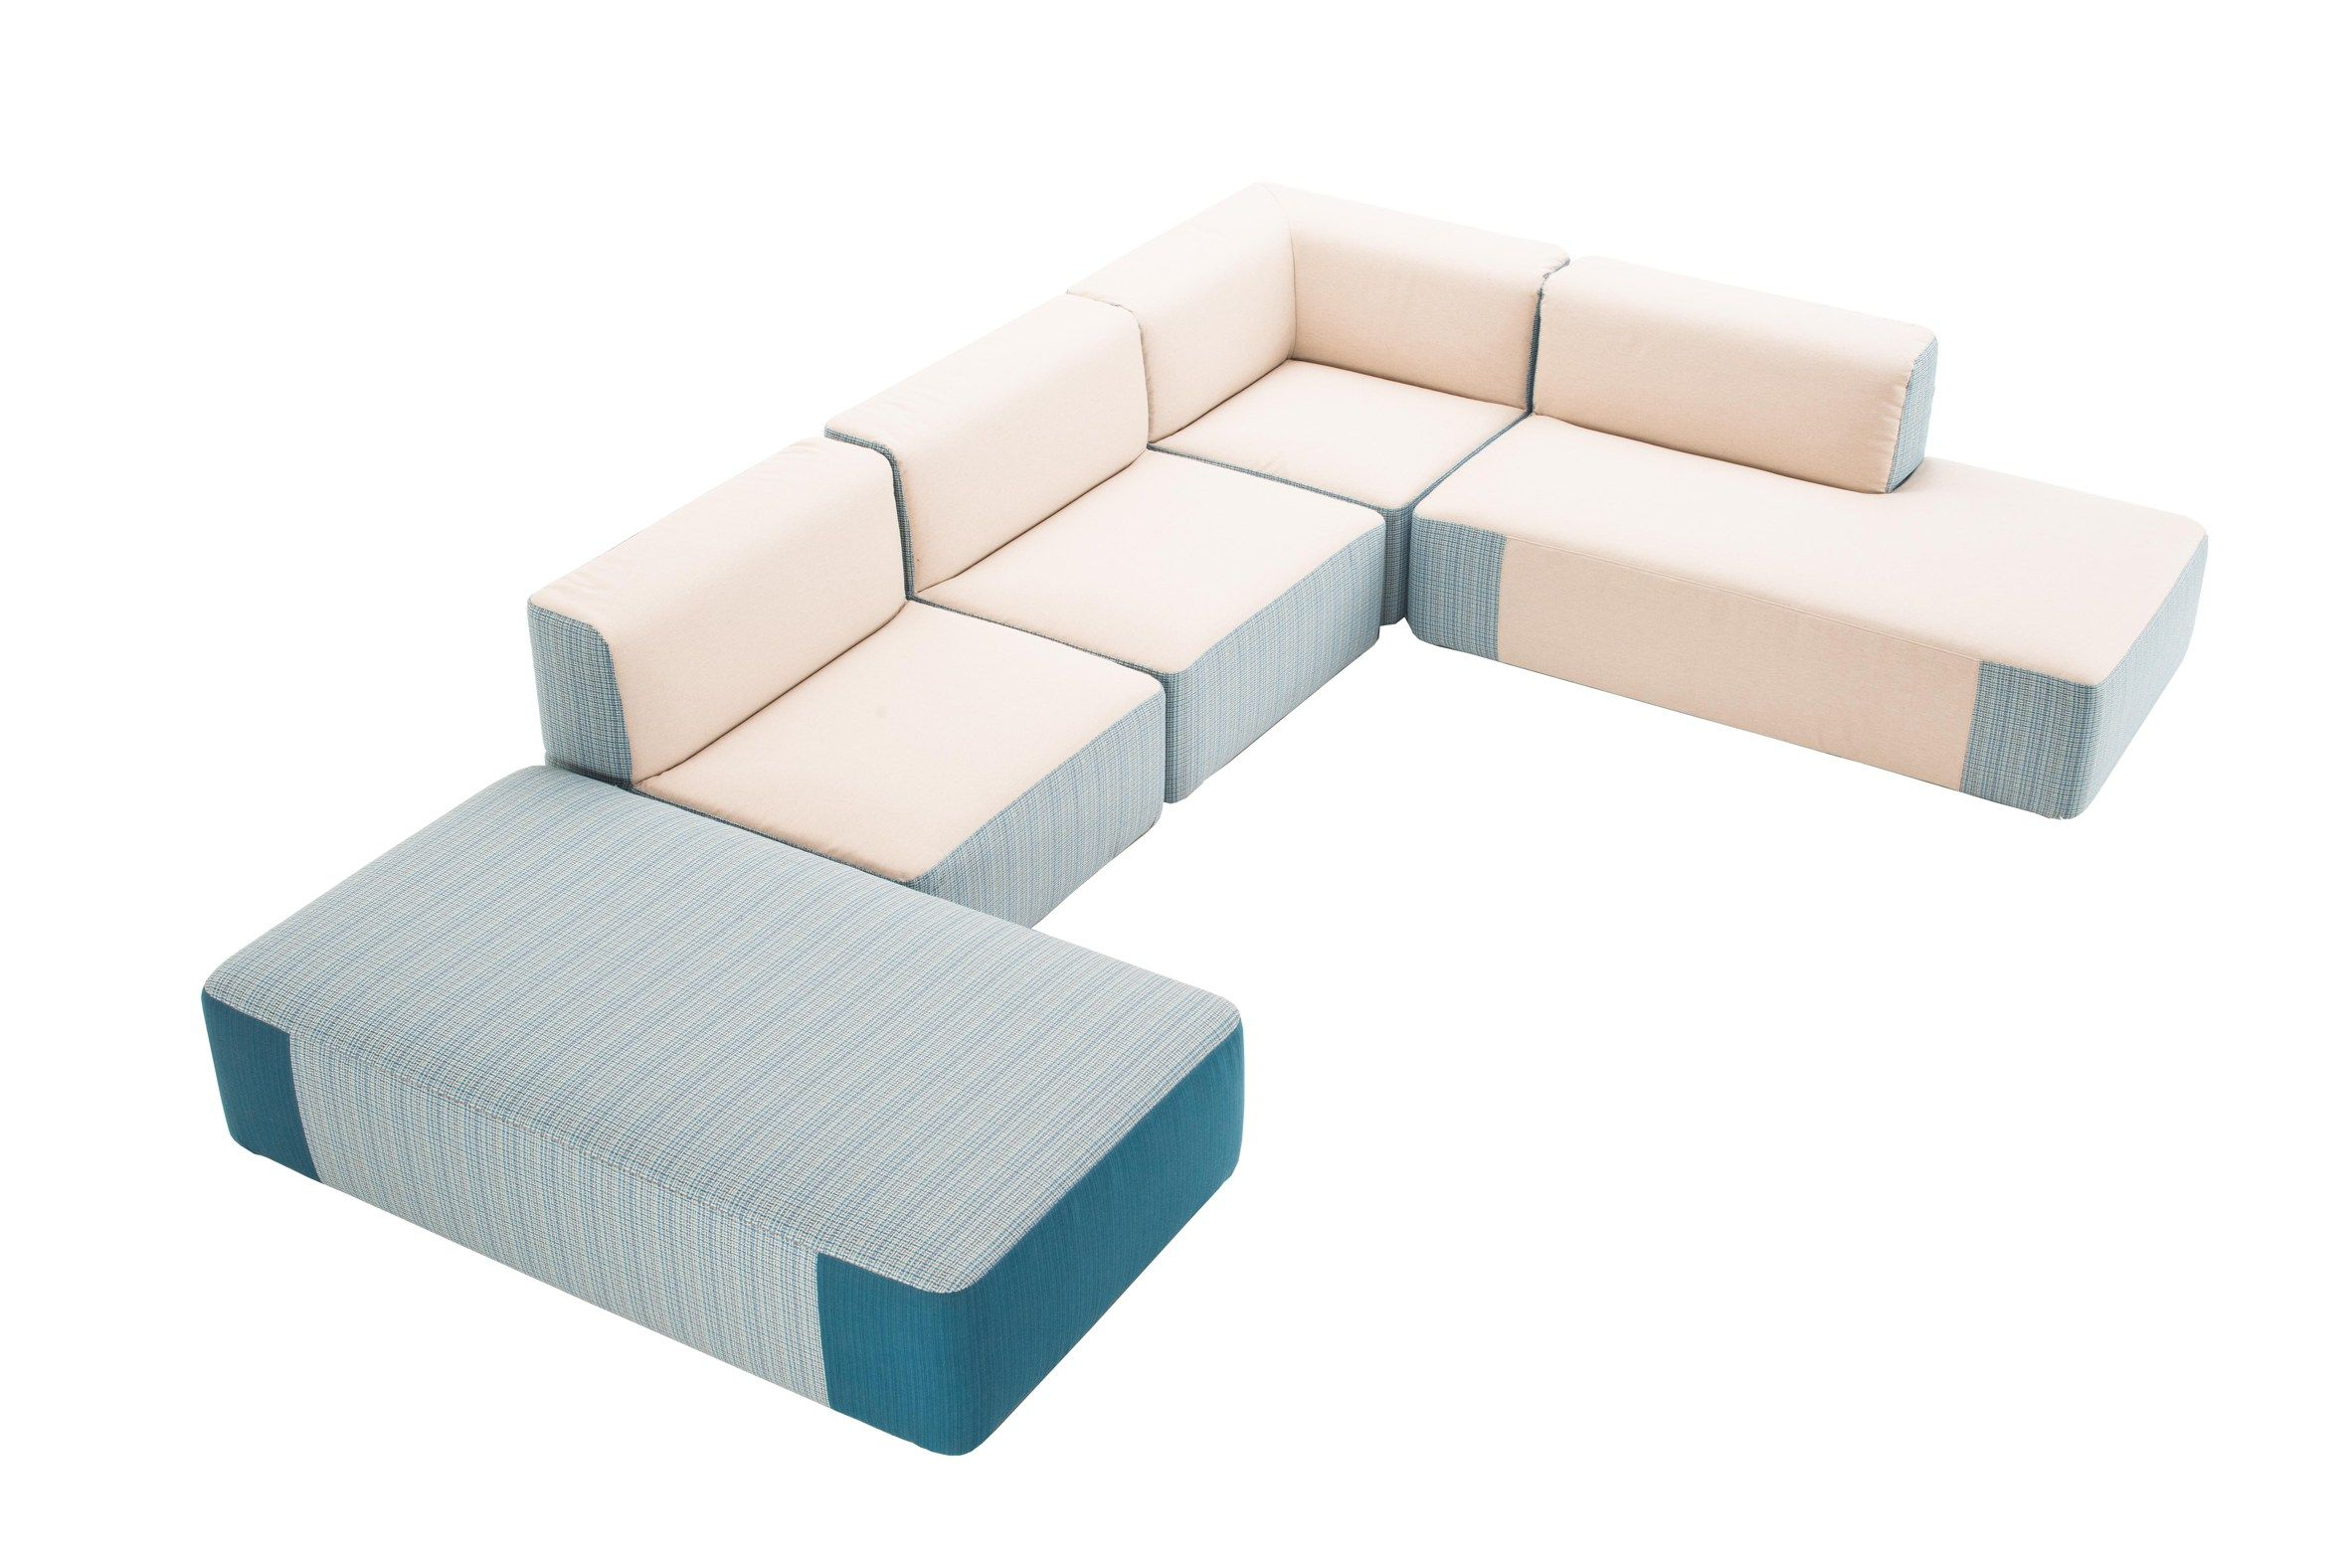 Belt Modular Sectional Sofa by Daniele Lo Scalzo Moscheri for